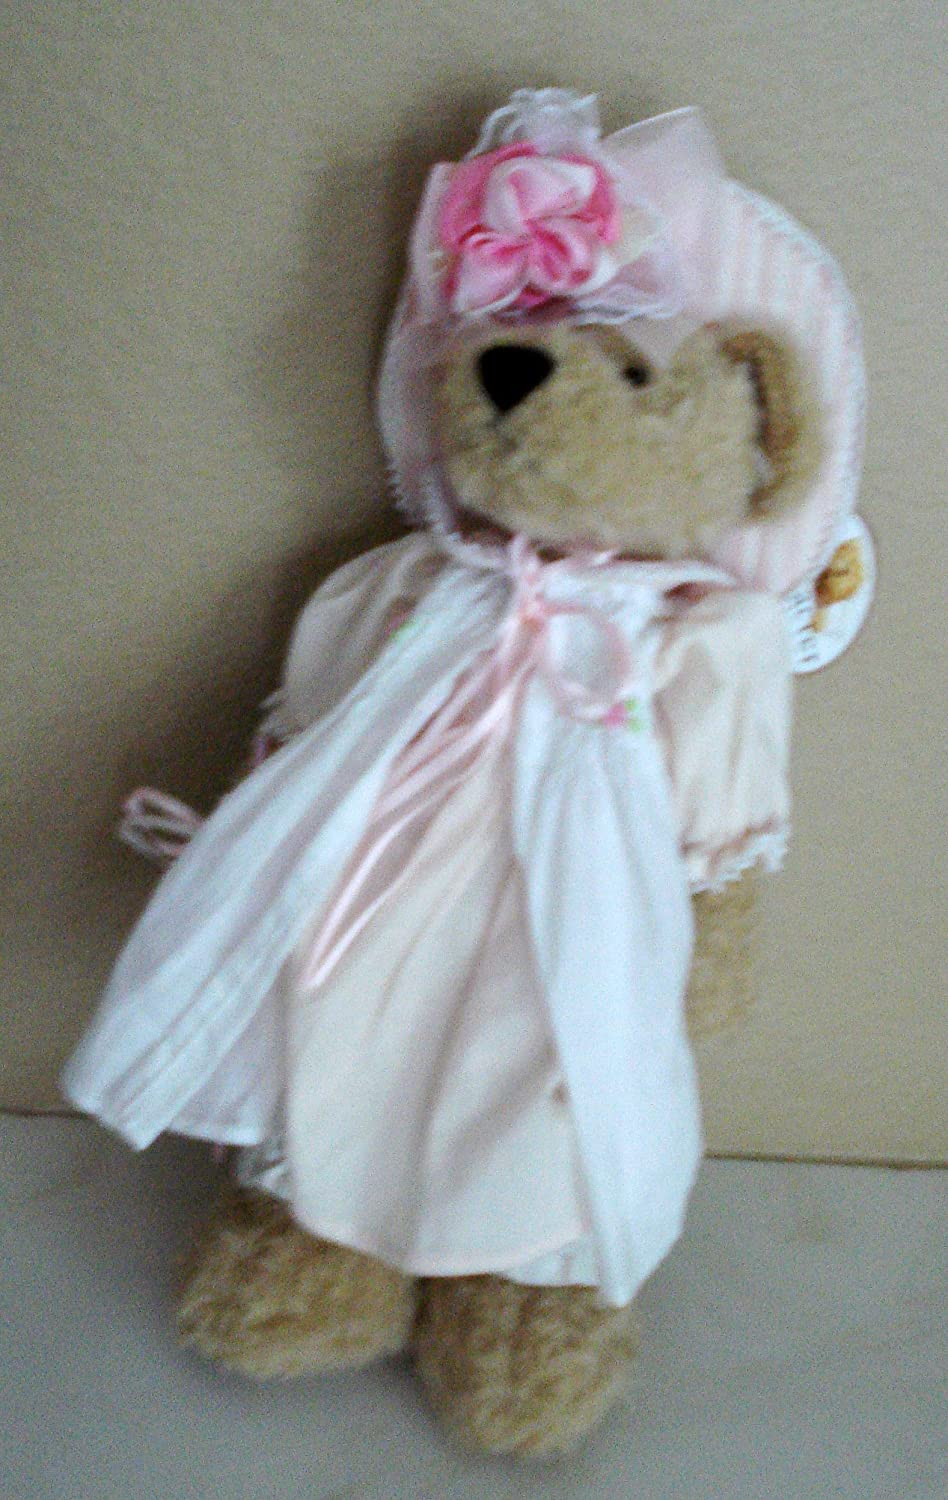 Amazon.com  Character Teds Plush Teddy Bear with Fancy Hat and Dress  Holding an Umbrella - 14 Inches  Toys   Games 26281ddaf54f